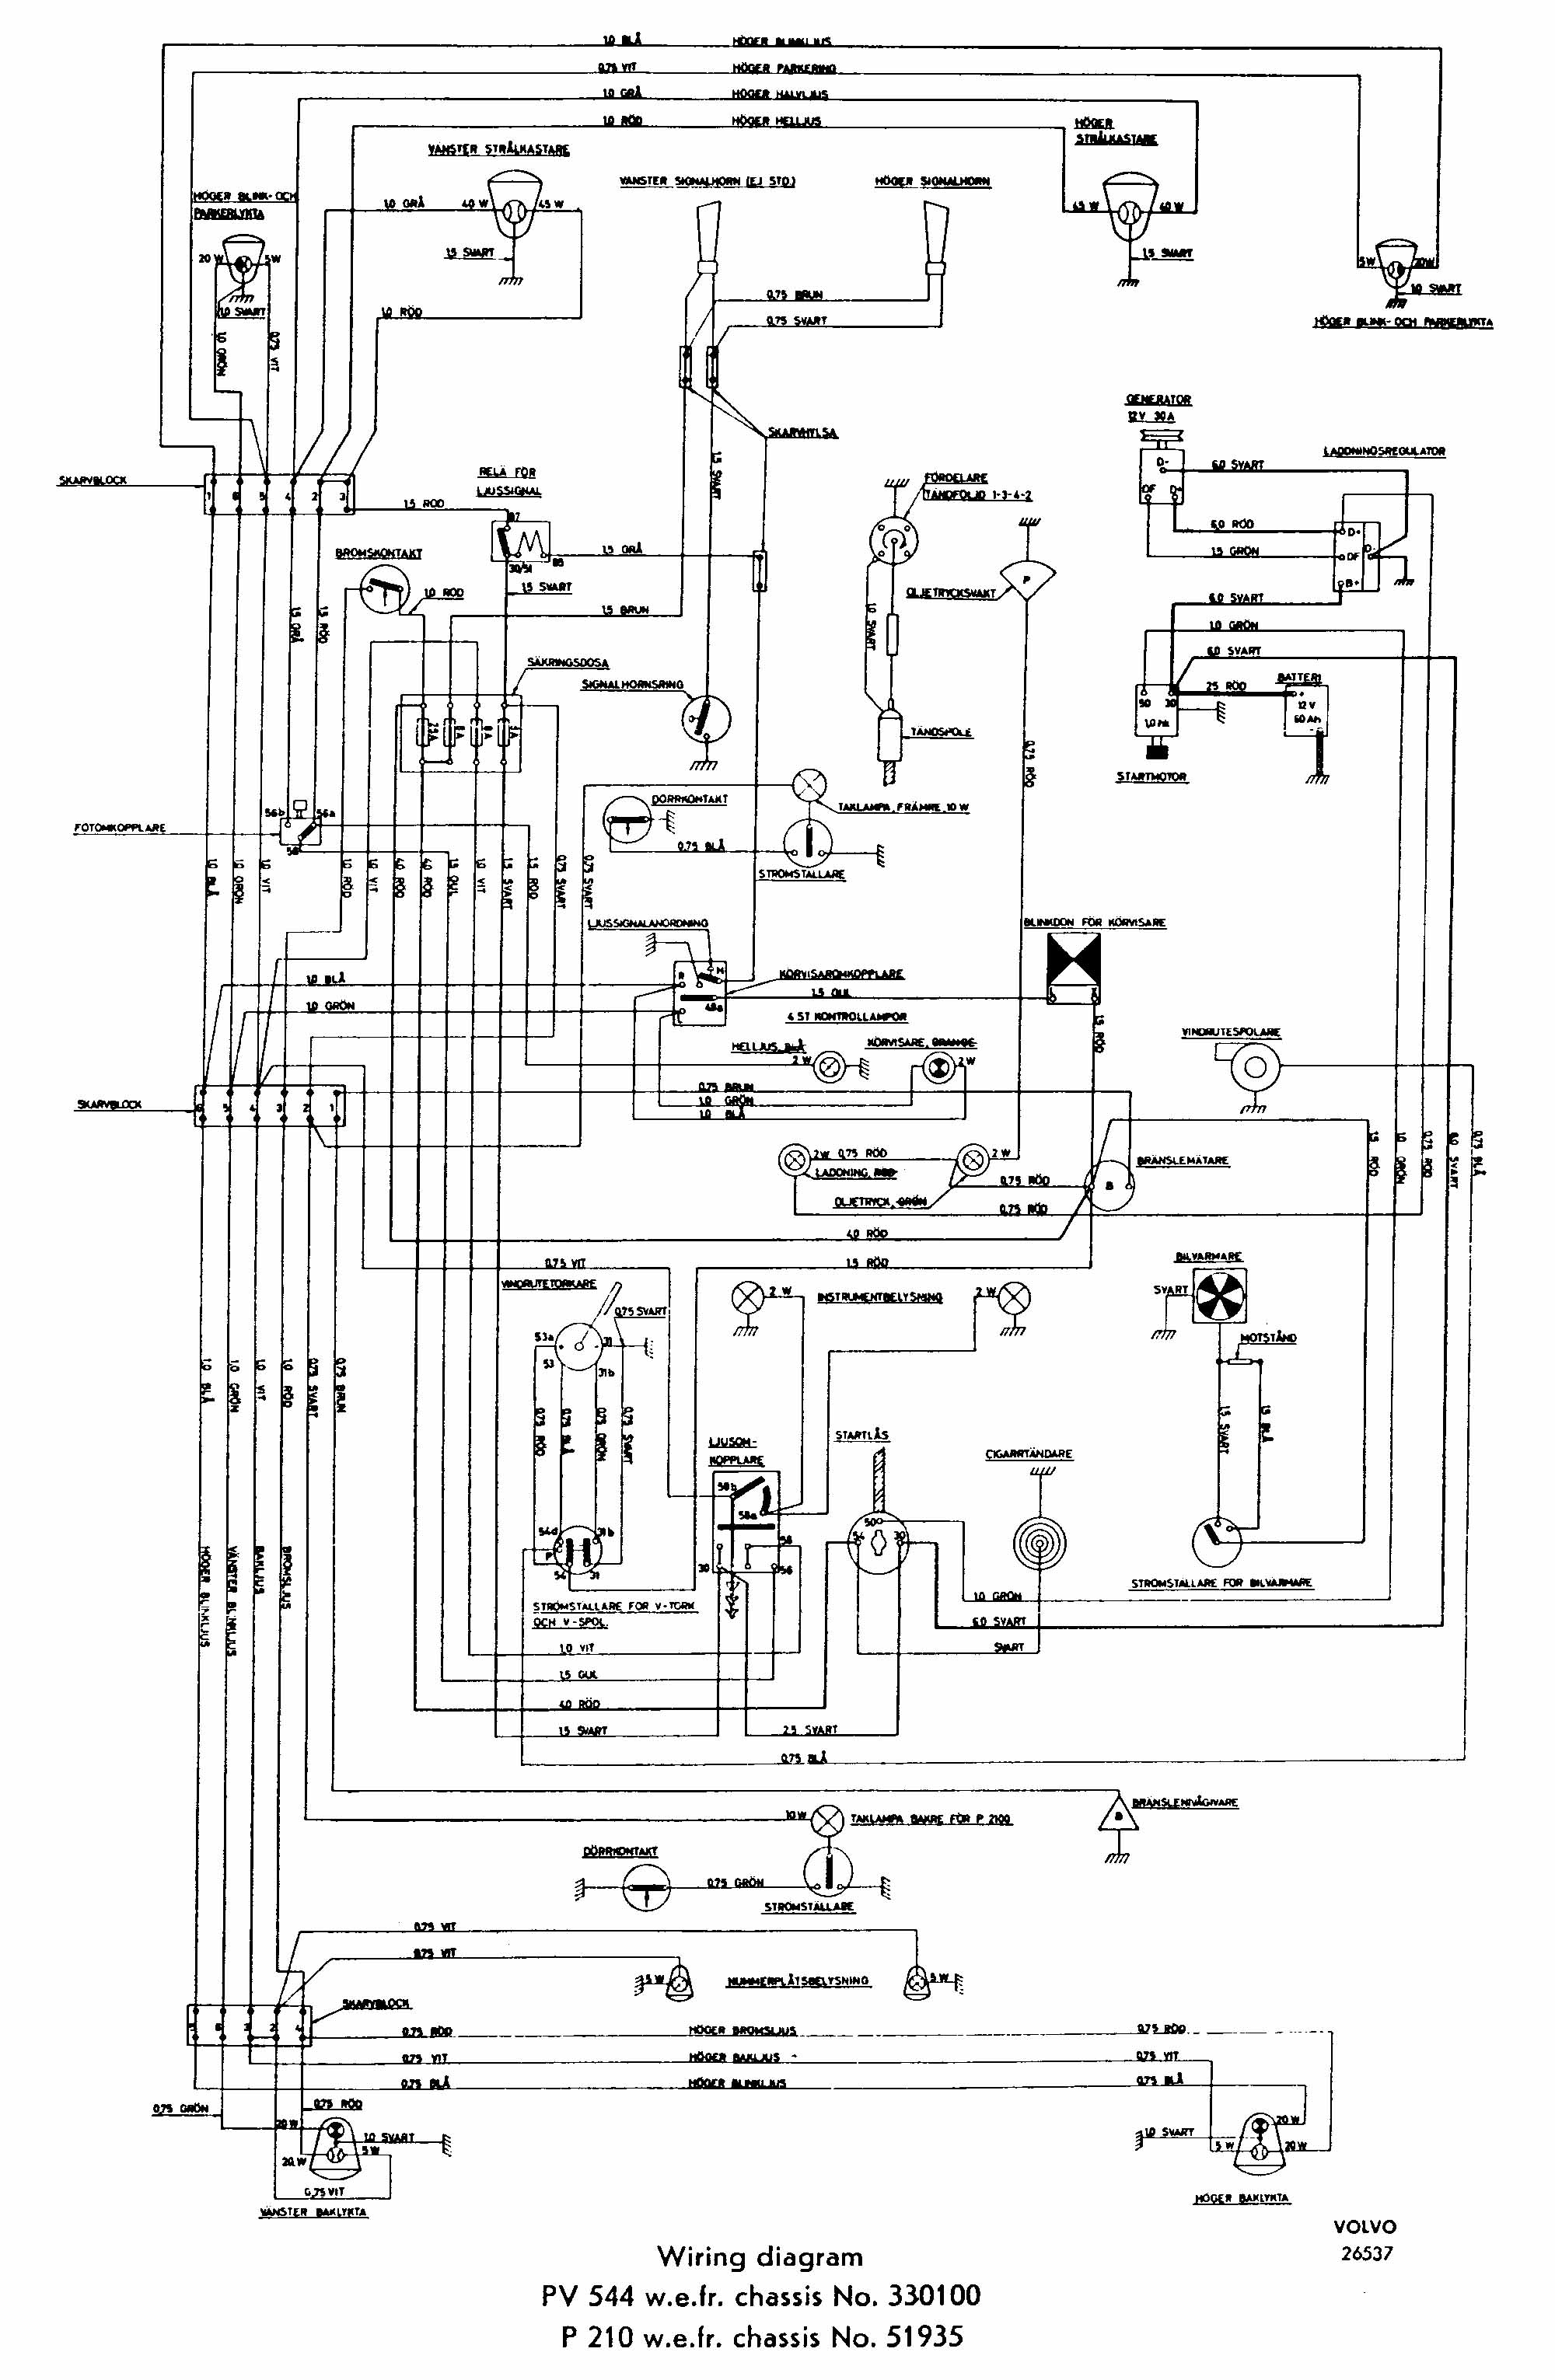 Volvo 122 Wiring Diagram Content Resource Of Wiring Diagram \u2022 Volvo  Xc70 Trailer Wiring Diagram